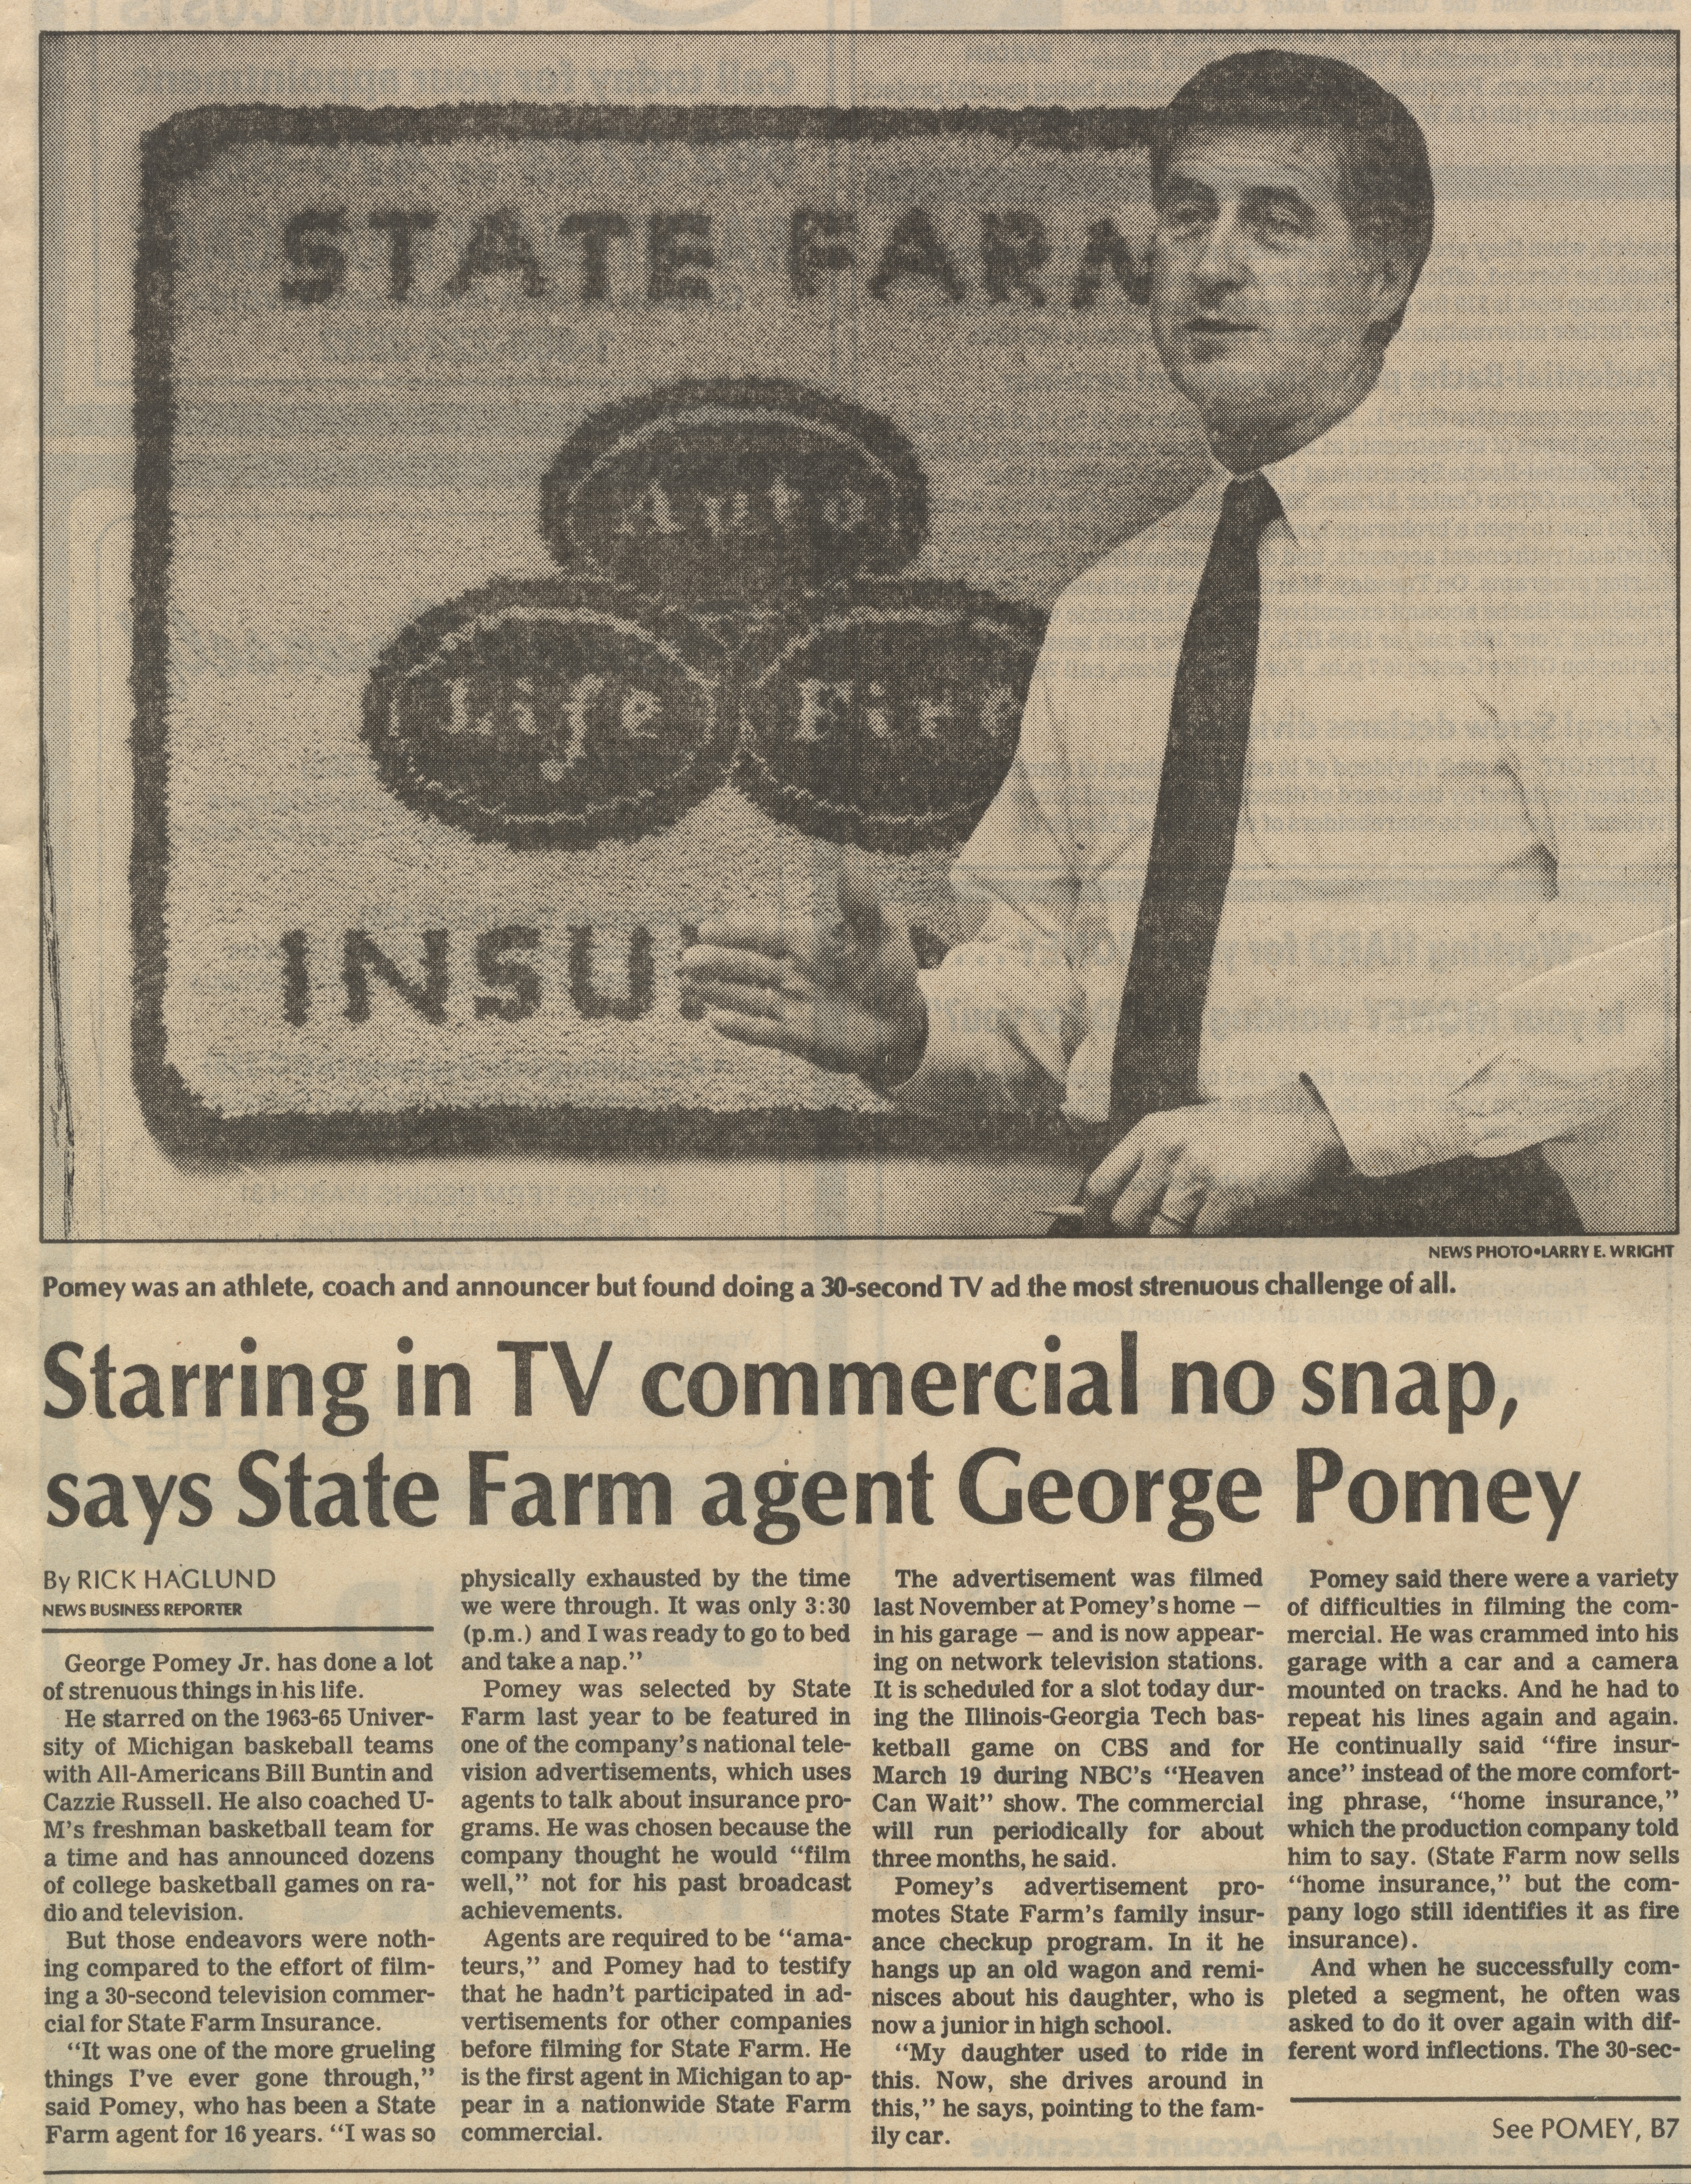 Starring in TV commercial no snap, says State Farm agent George Pomey image